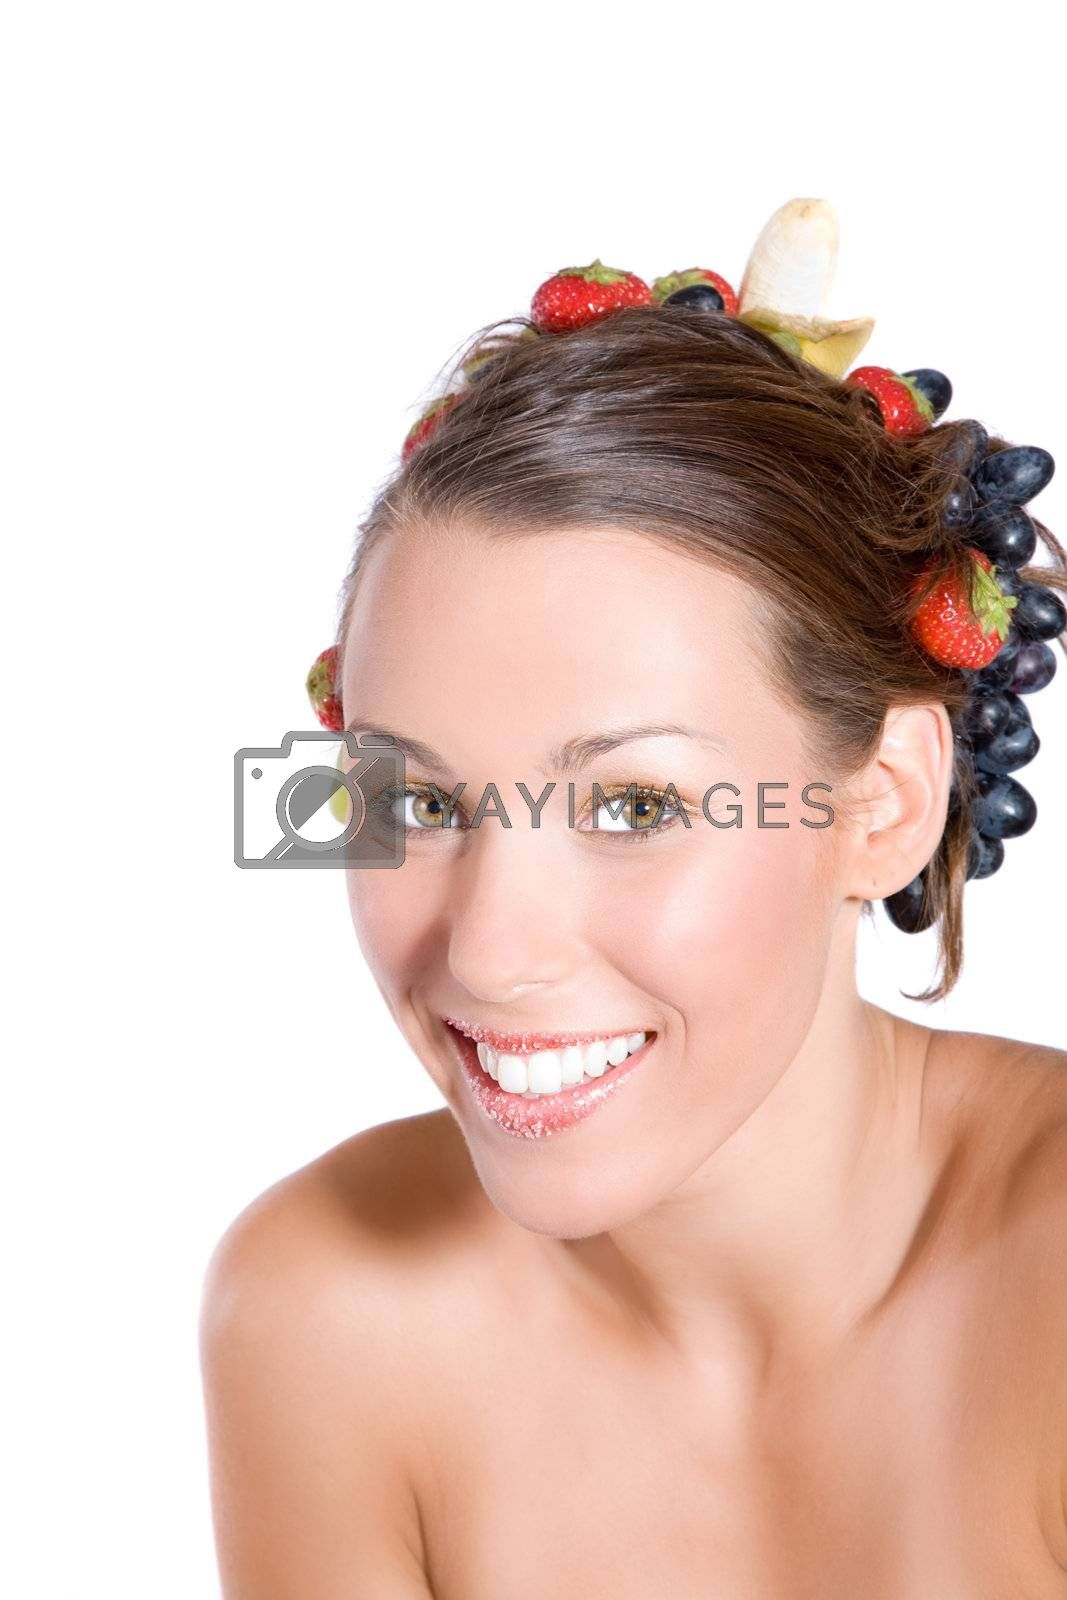 Beautiful girl with radiant smile and fruit in her hair